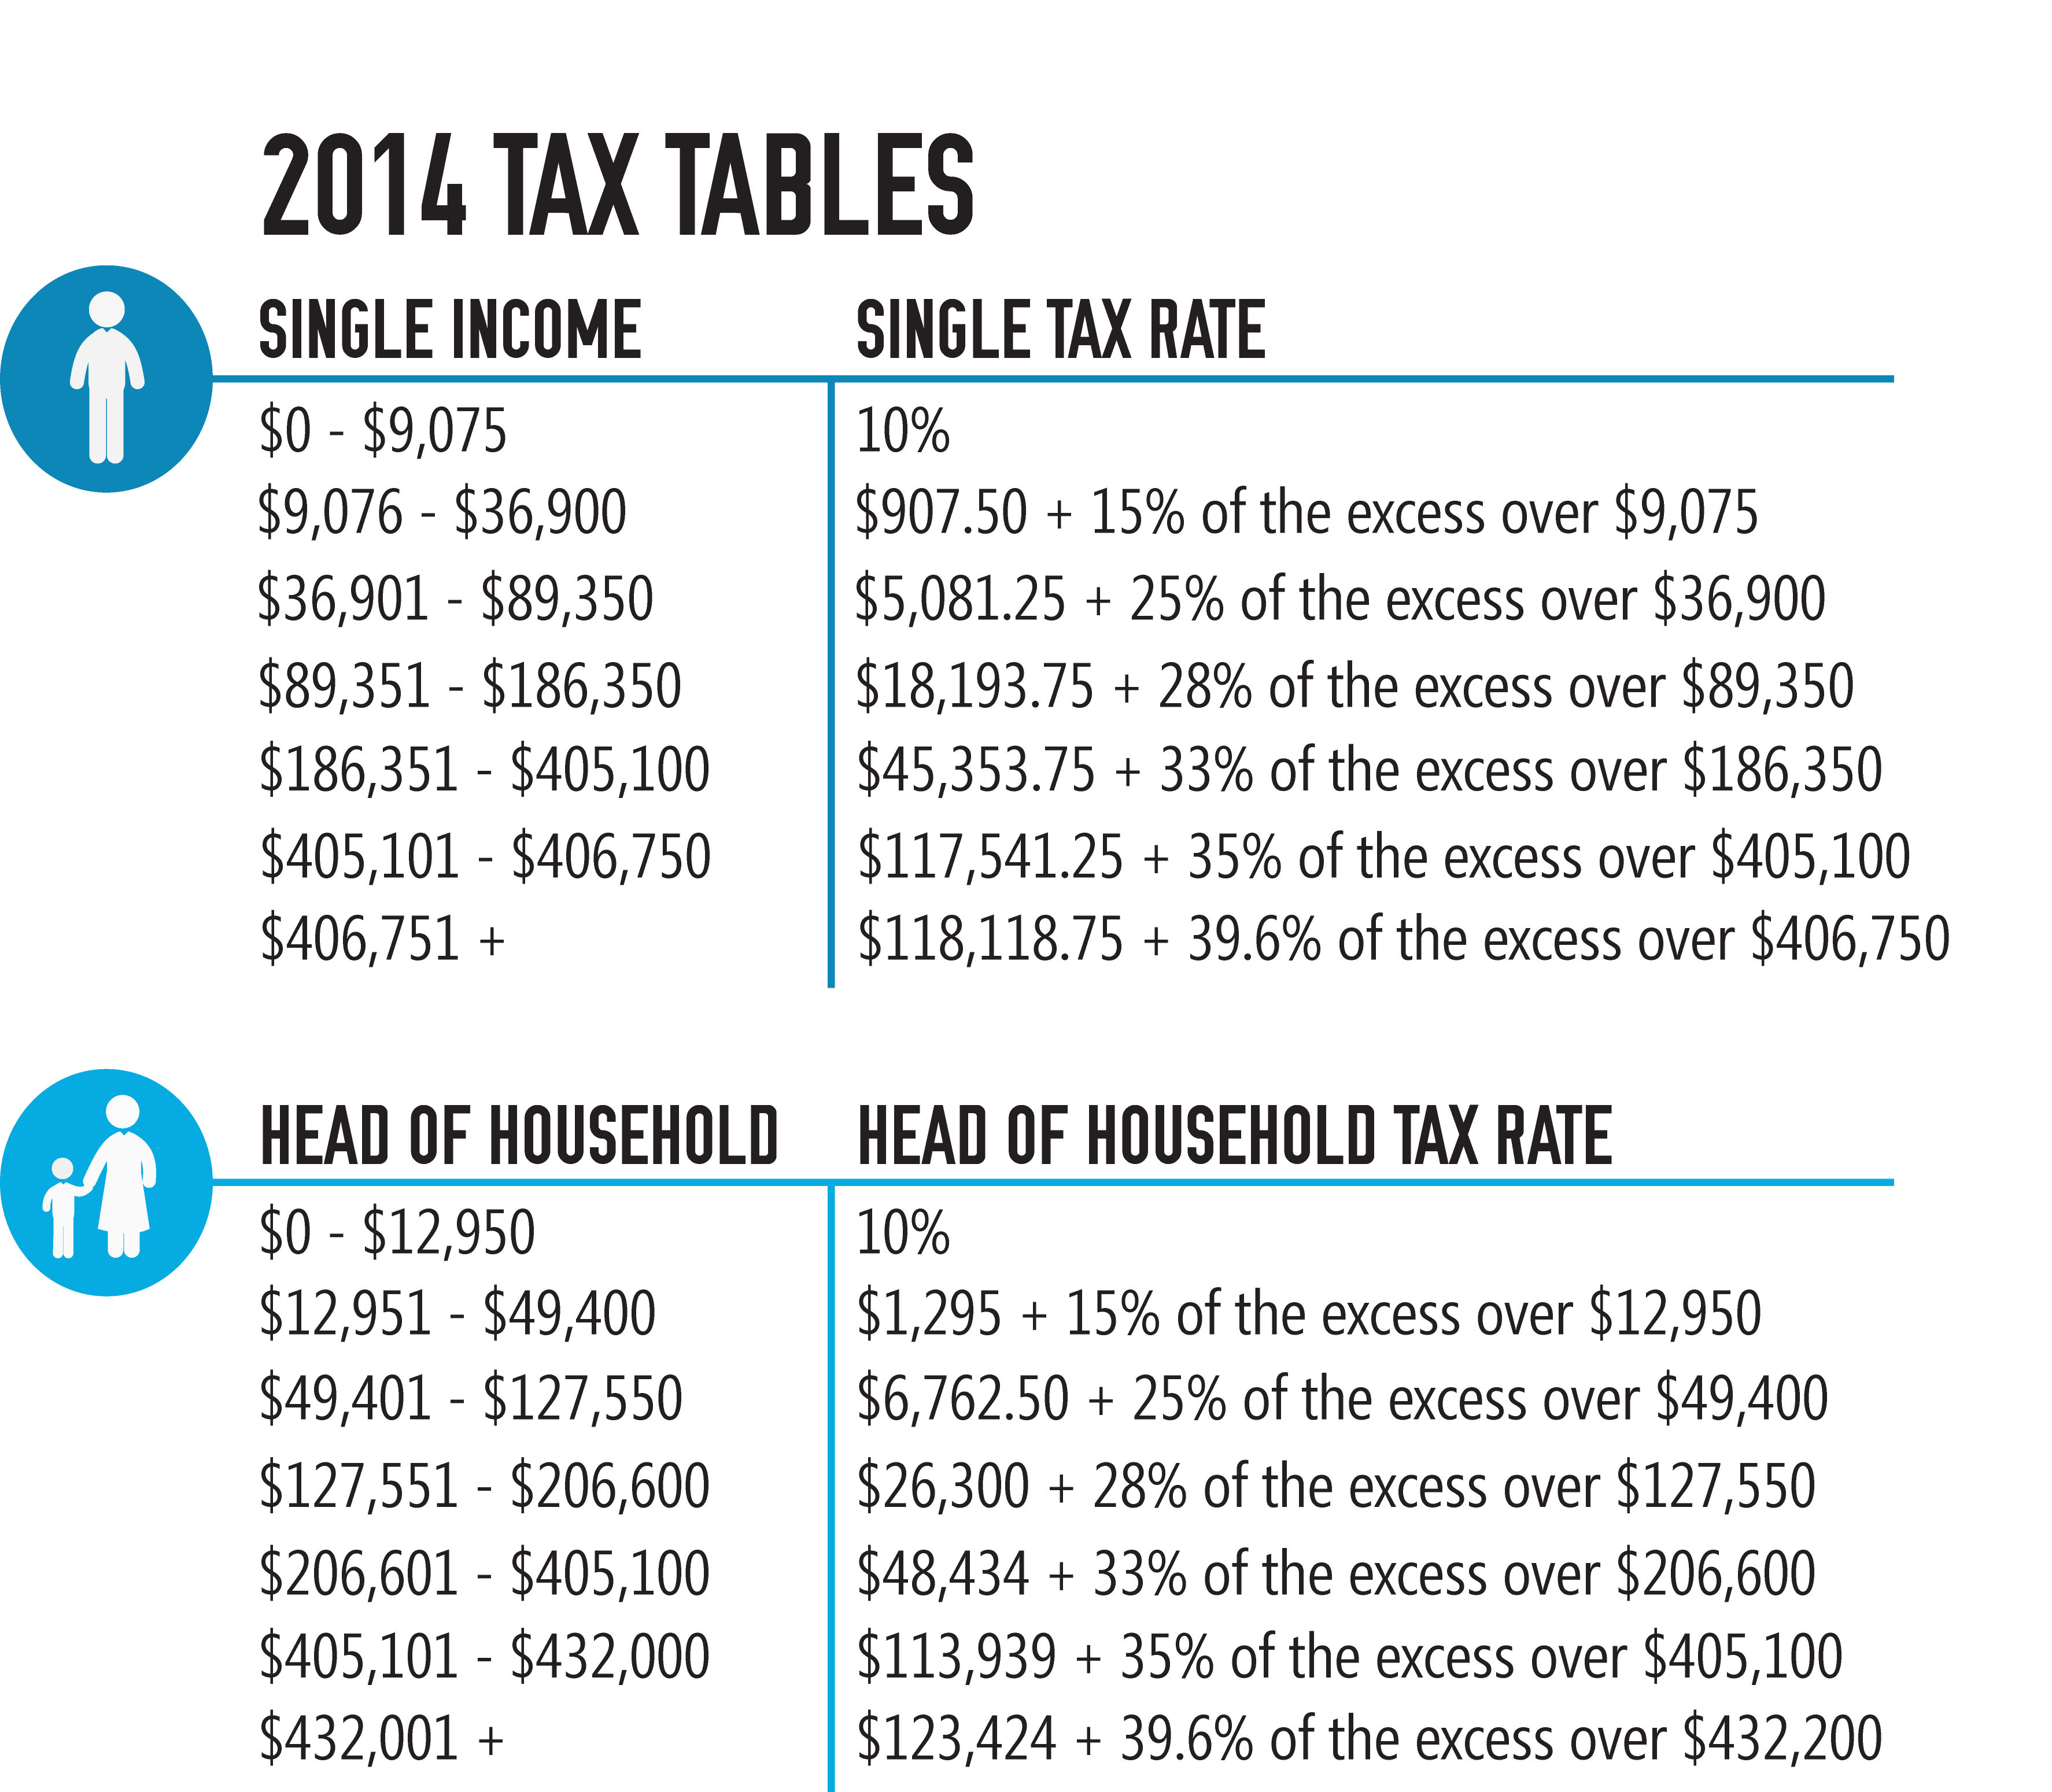 The Tax Tables